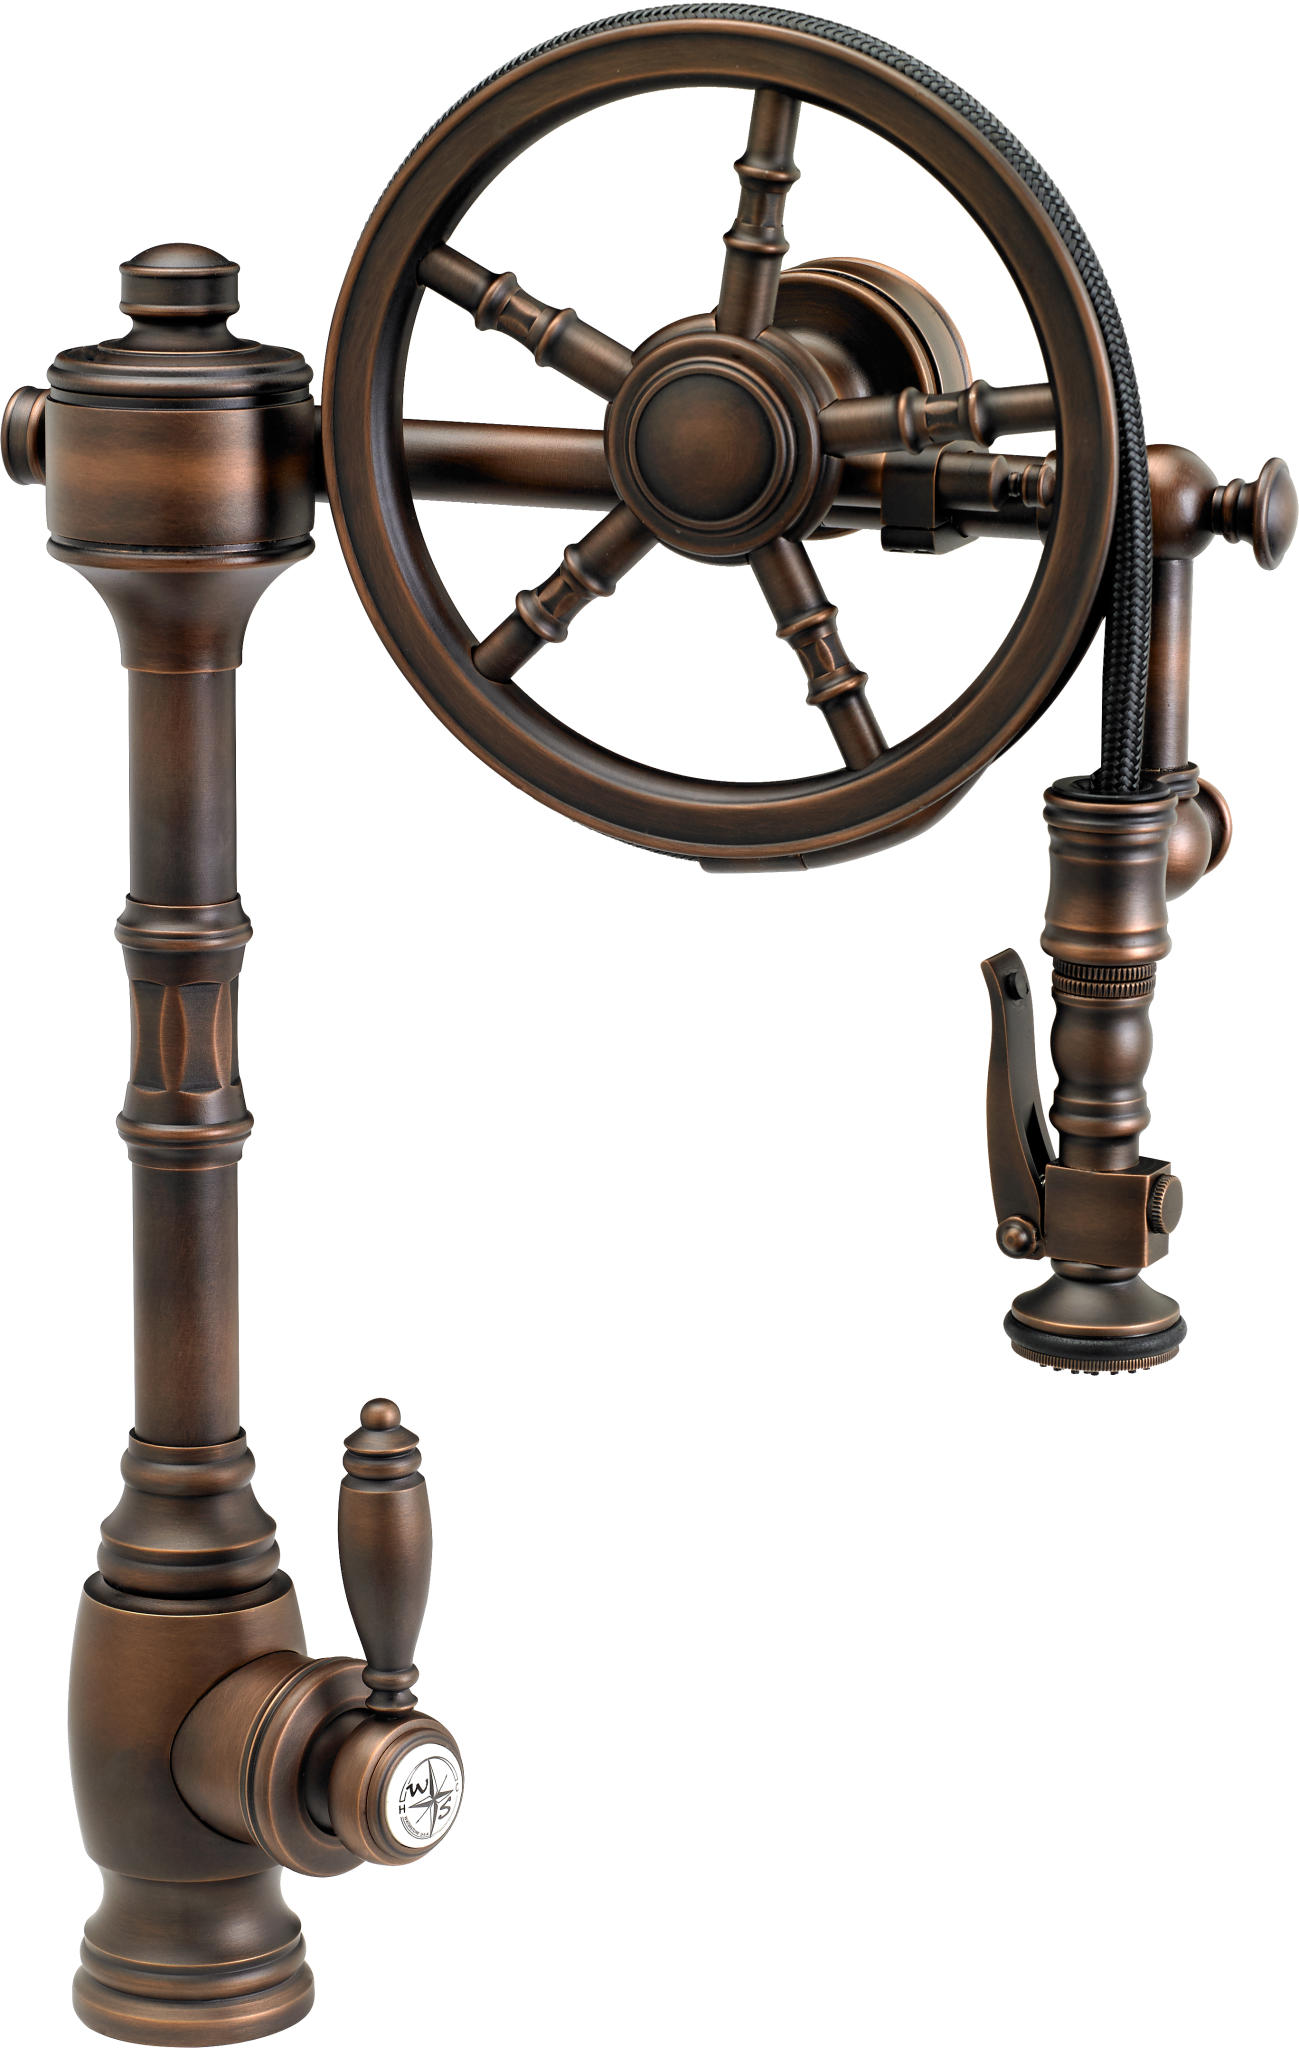 Industrial Style Faucets Past And Future Meet In Steampunk Decor Abode